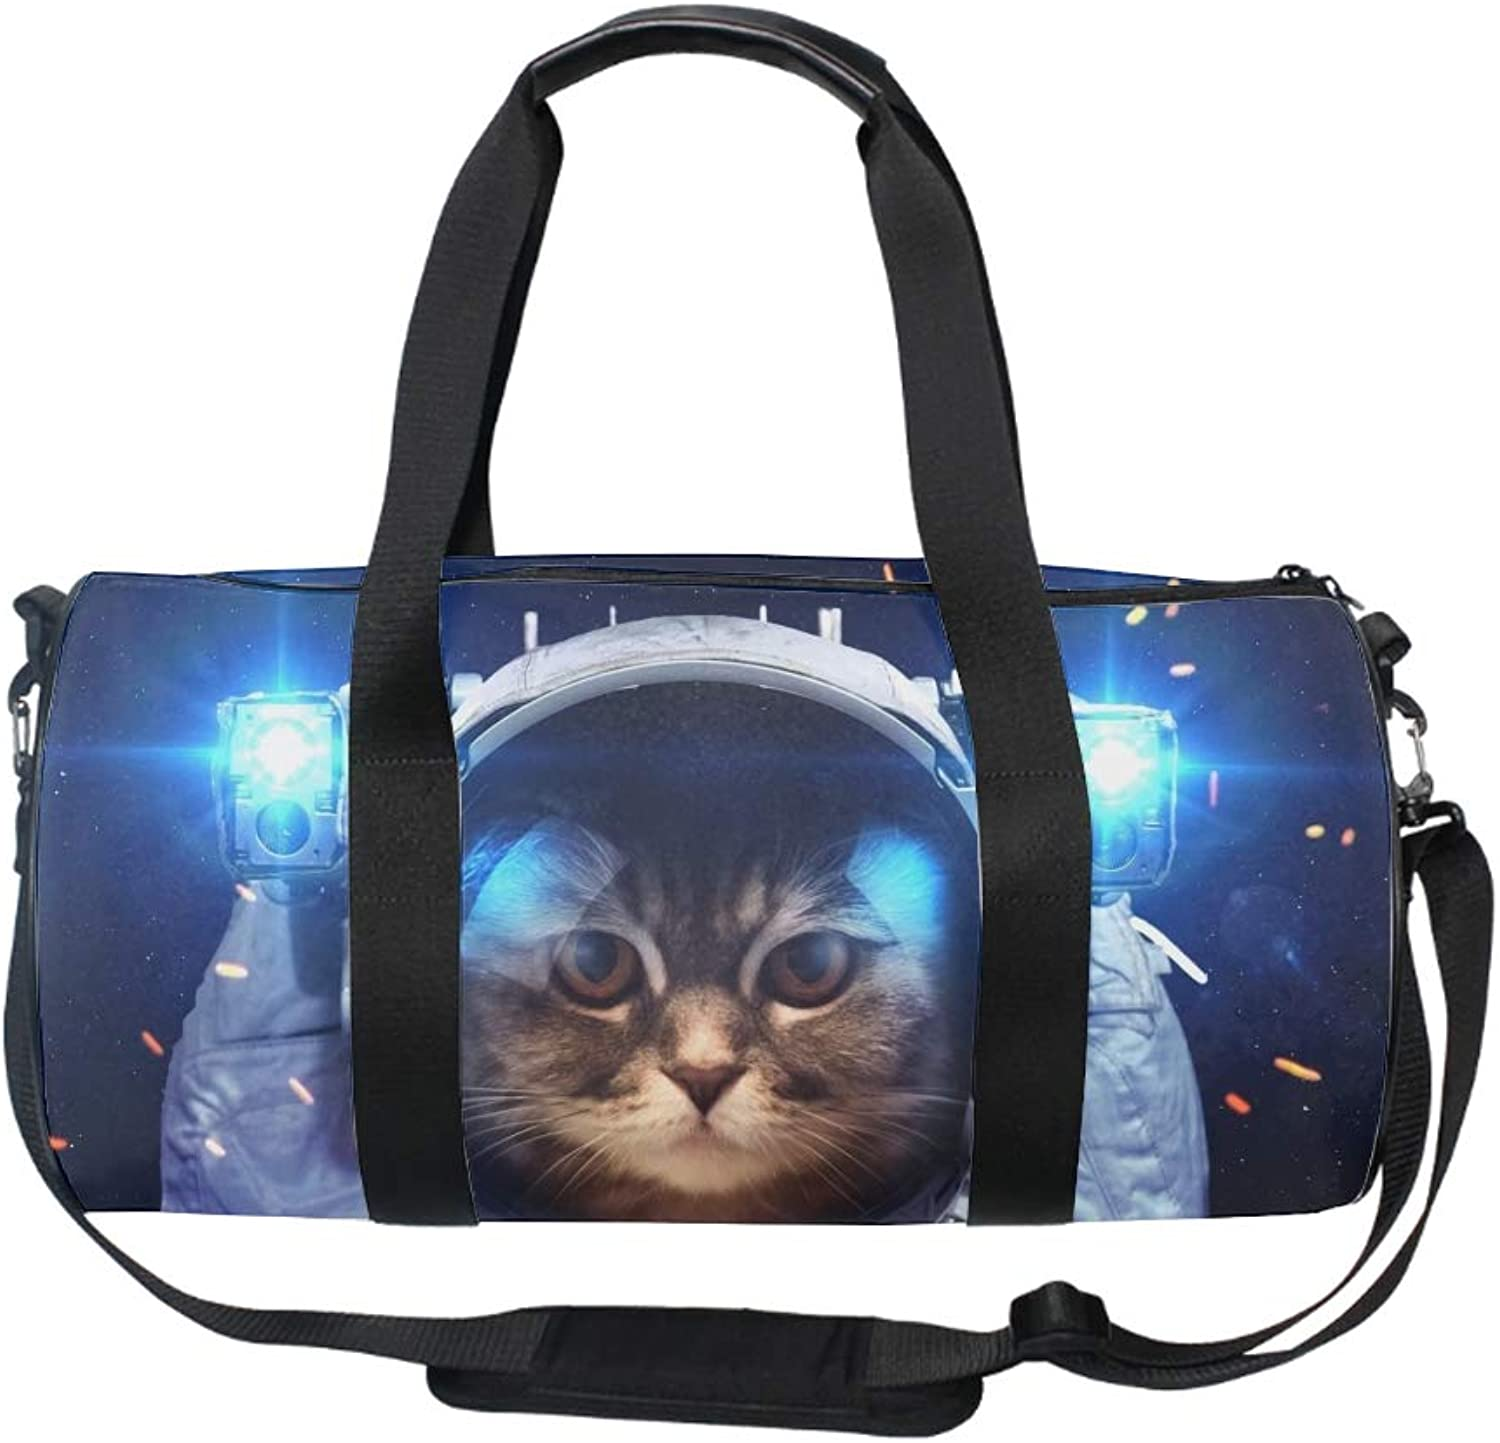 17  Blank Sports Duffle Bag Funny Space Cats Gym Bag Travel Duffel with Adjustable Strap